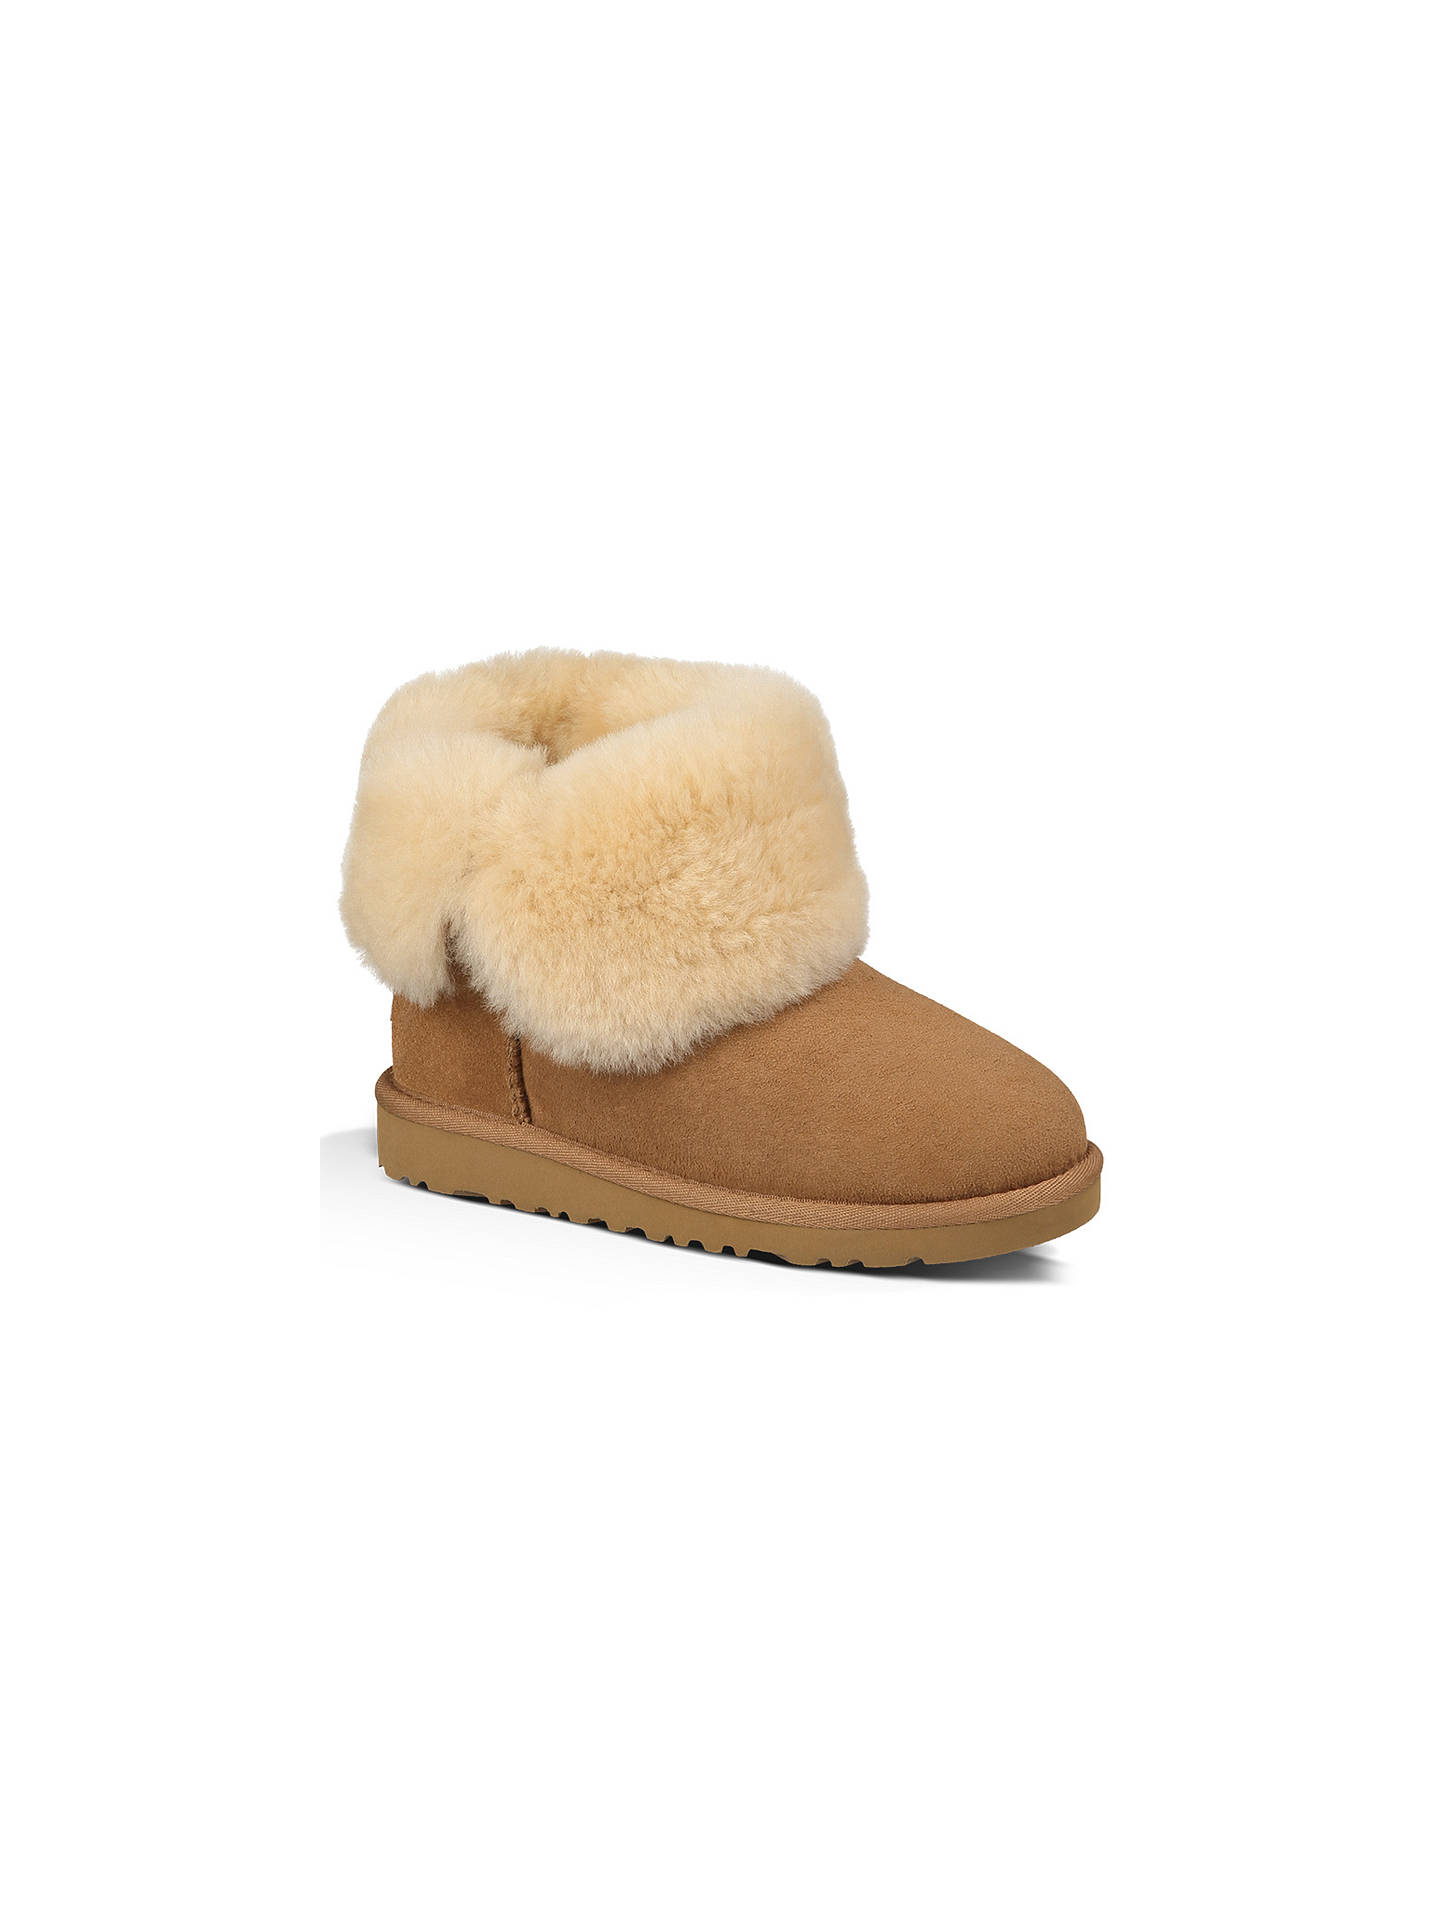 ab52bcced ebay ugg womens bailey button ii boots grey size 9 15219 d3258; where to buy  buyugg childrens bailey button boots chestnut 12 jnr online at johnlewis.  2c596